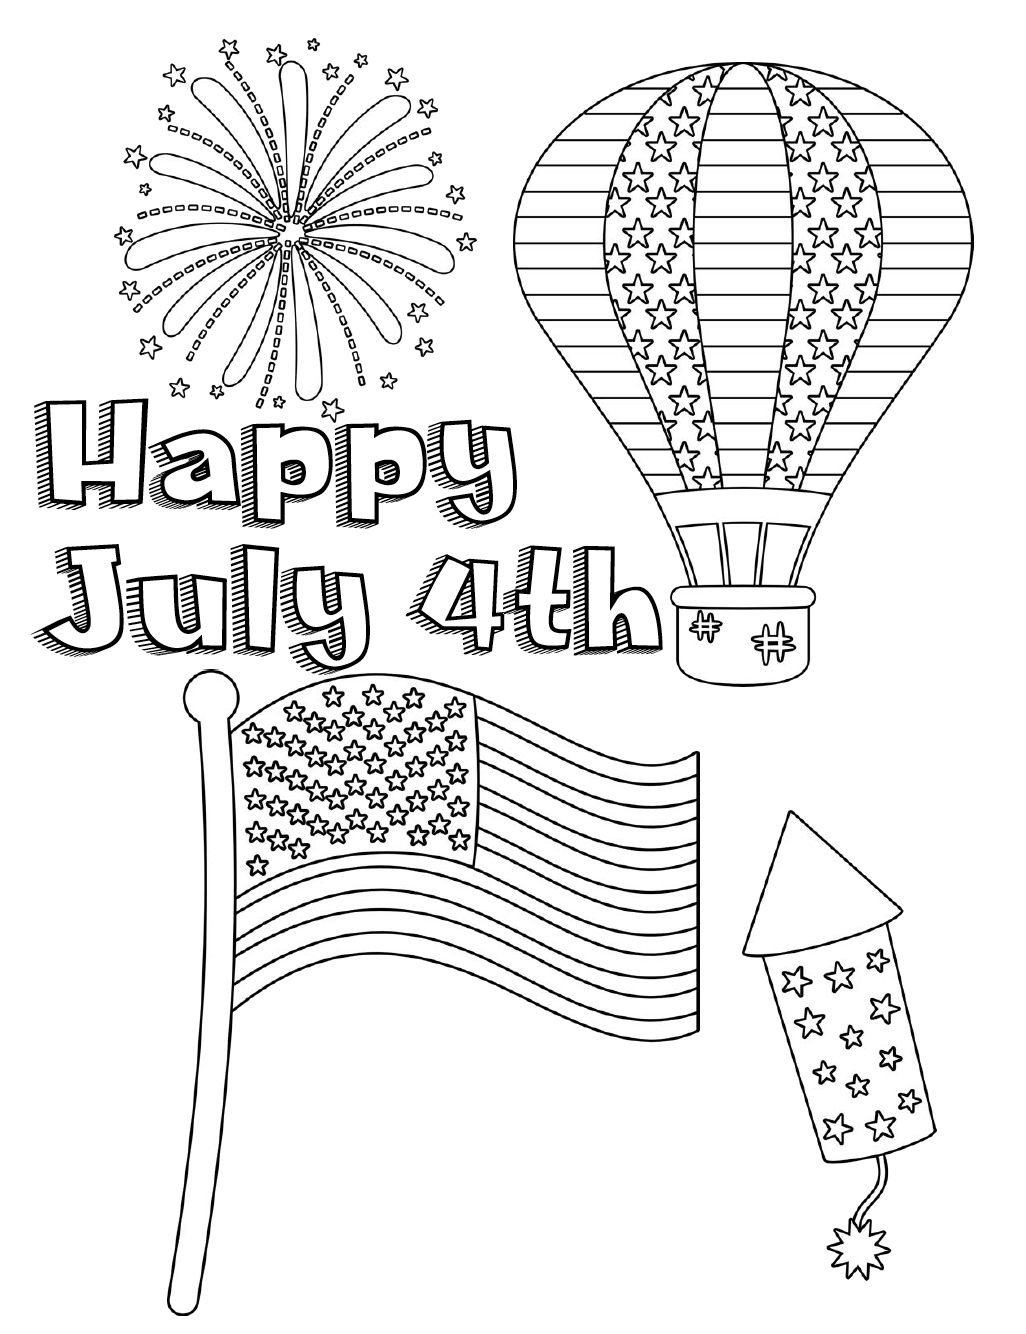 free printable coloring pages 4th of july patriotic 4th of july coloring pages july 4th free coloring 4th free july of pages printable